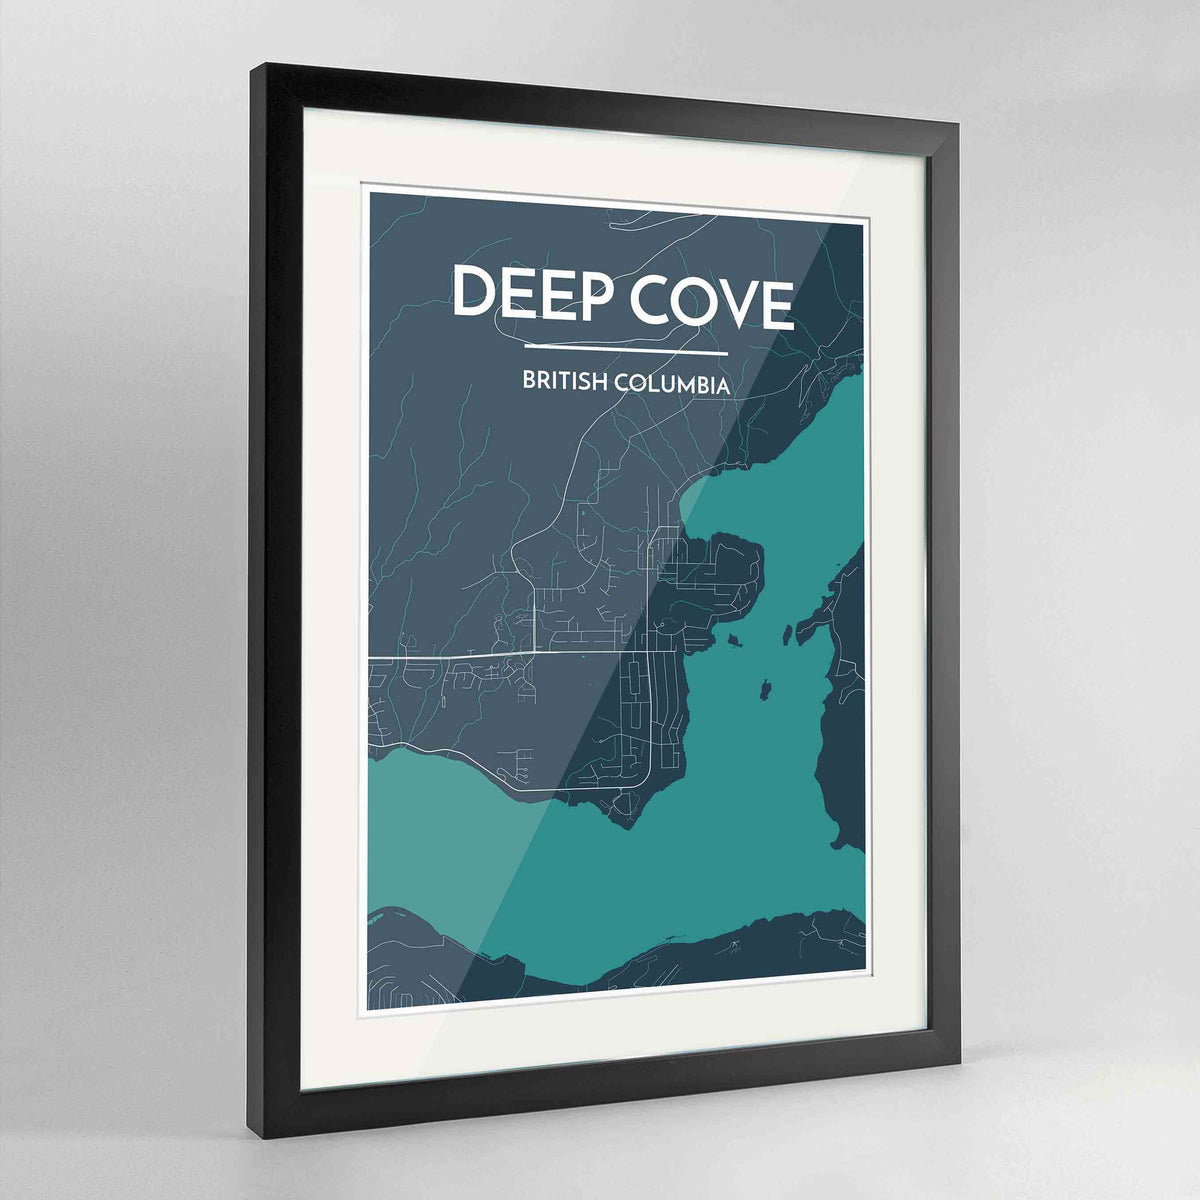 "Framed Deep Cove Map Art Print 24x36"" Contemporary Black frame Point Two Design Group"